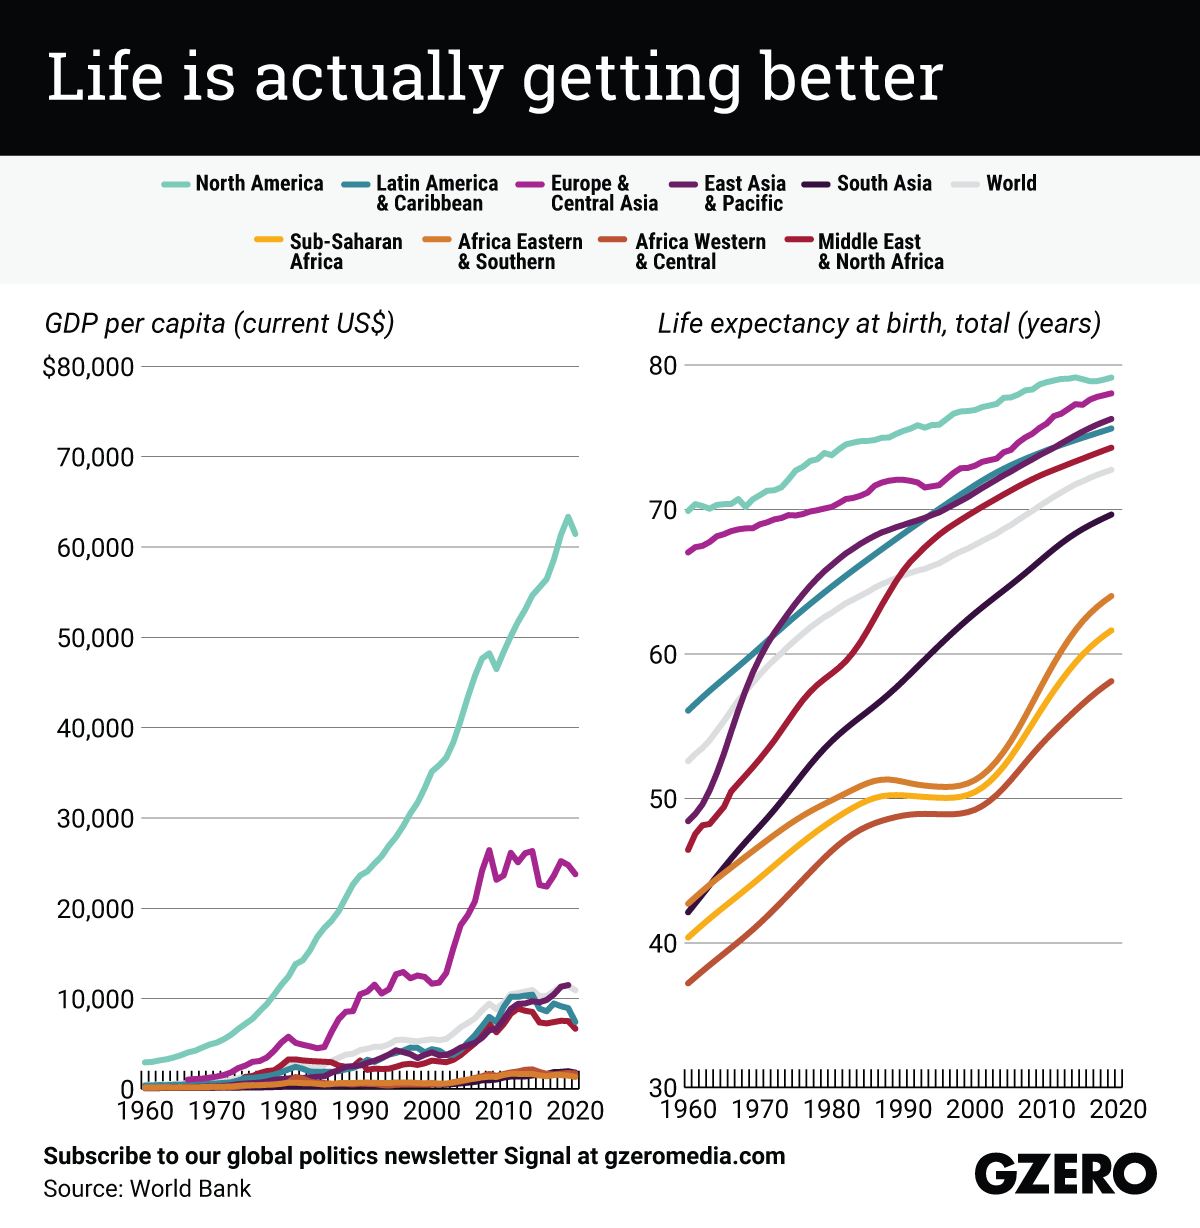 The Graphic Truth: Life is actually getting better